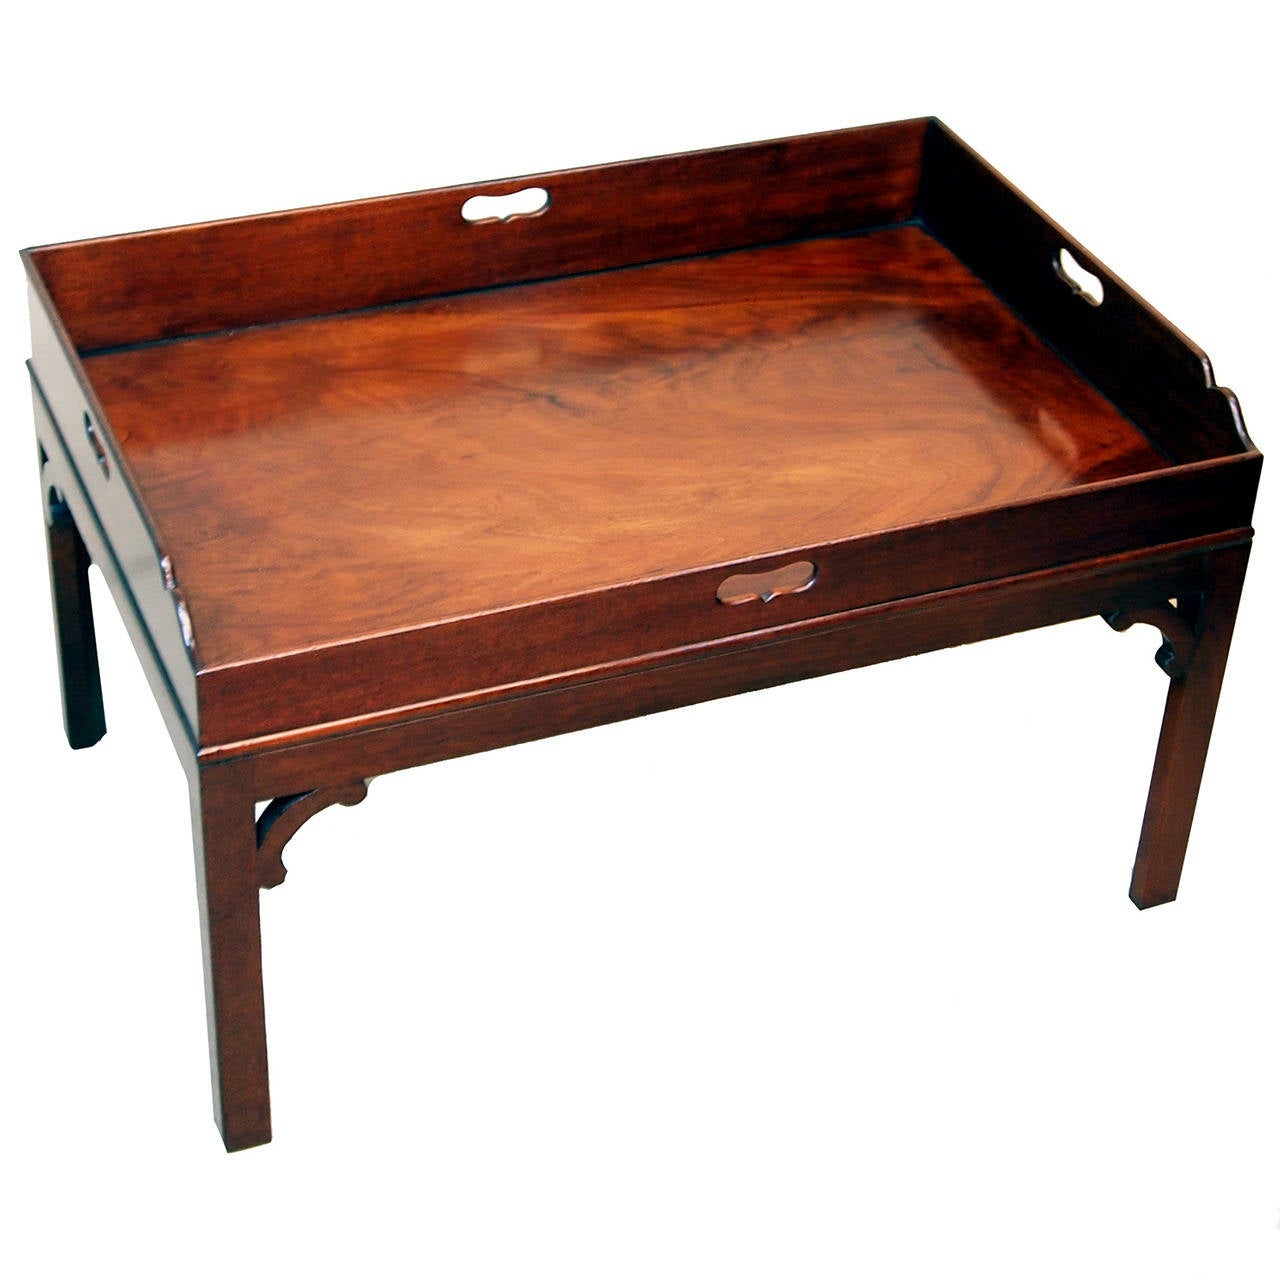 antique georgian mahogany butlers tray table at 1stdibs. Black Bedroom Furniture Sets. Home Design Ideas